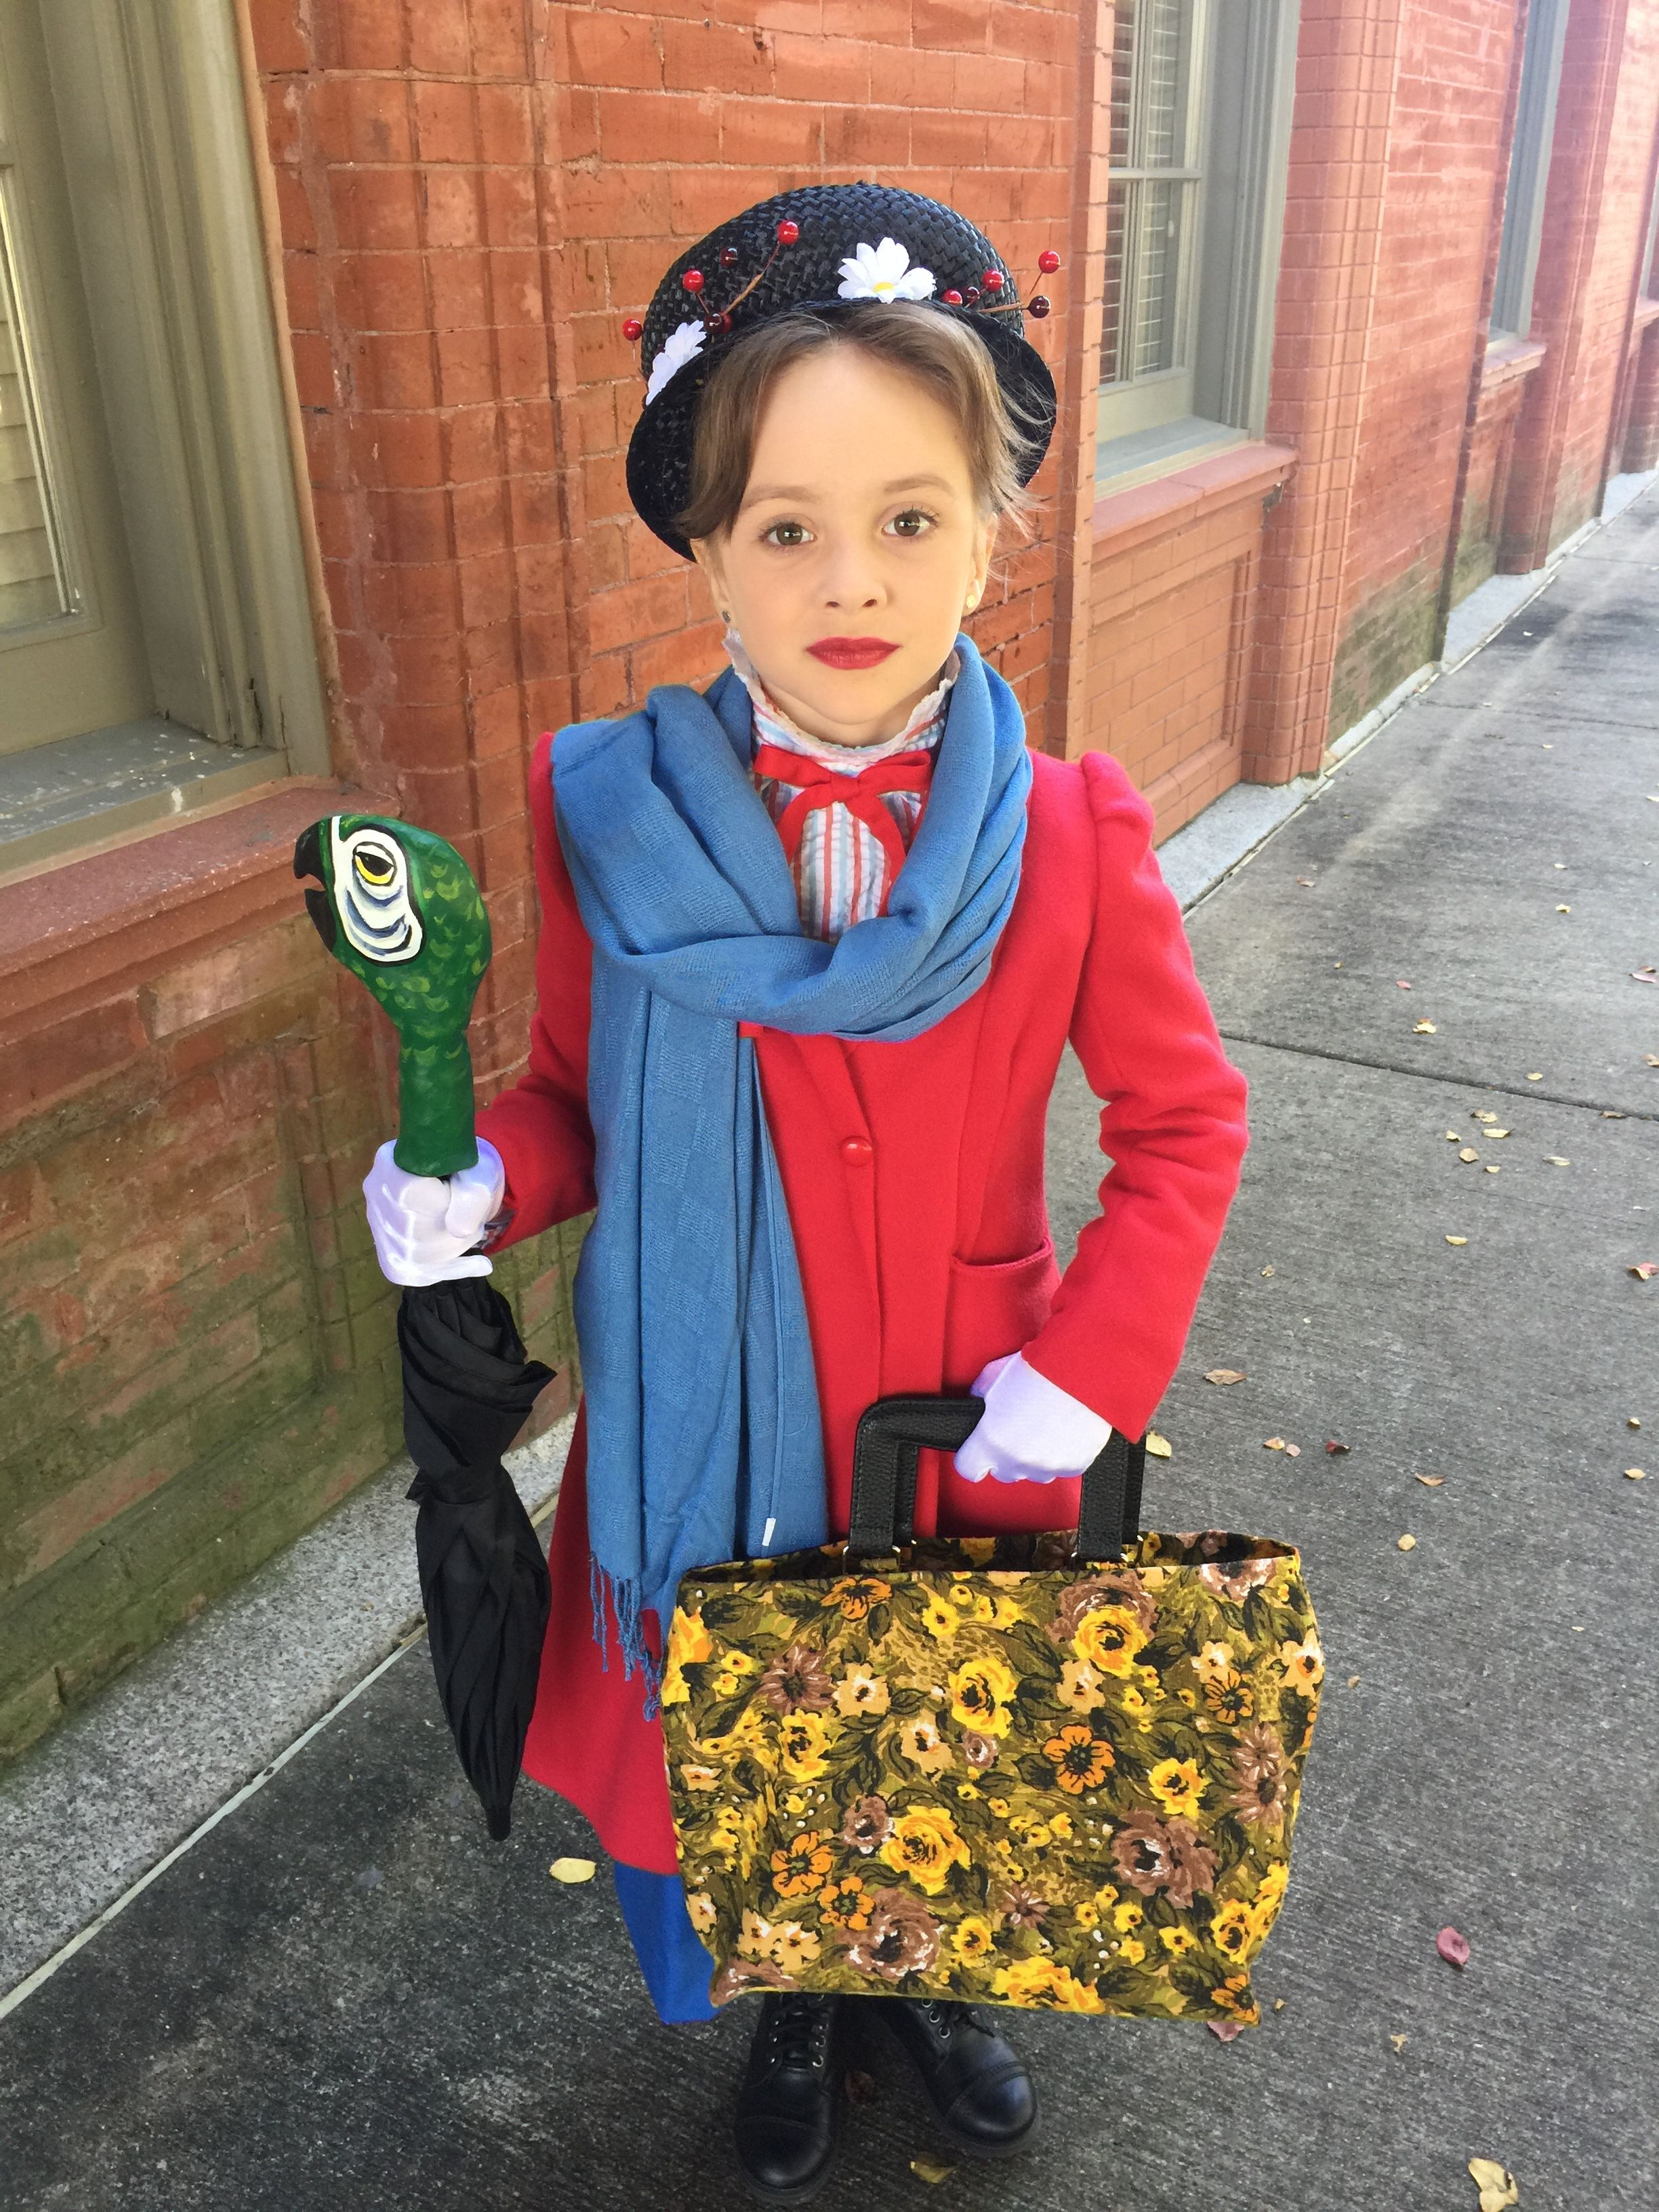 Girls Mary Poppins Costume Mary Poppins Costume Mary Poppins Halloween Costume Mary Poppins Costume Kids